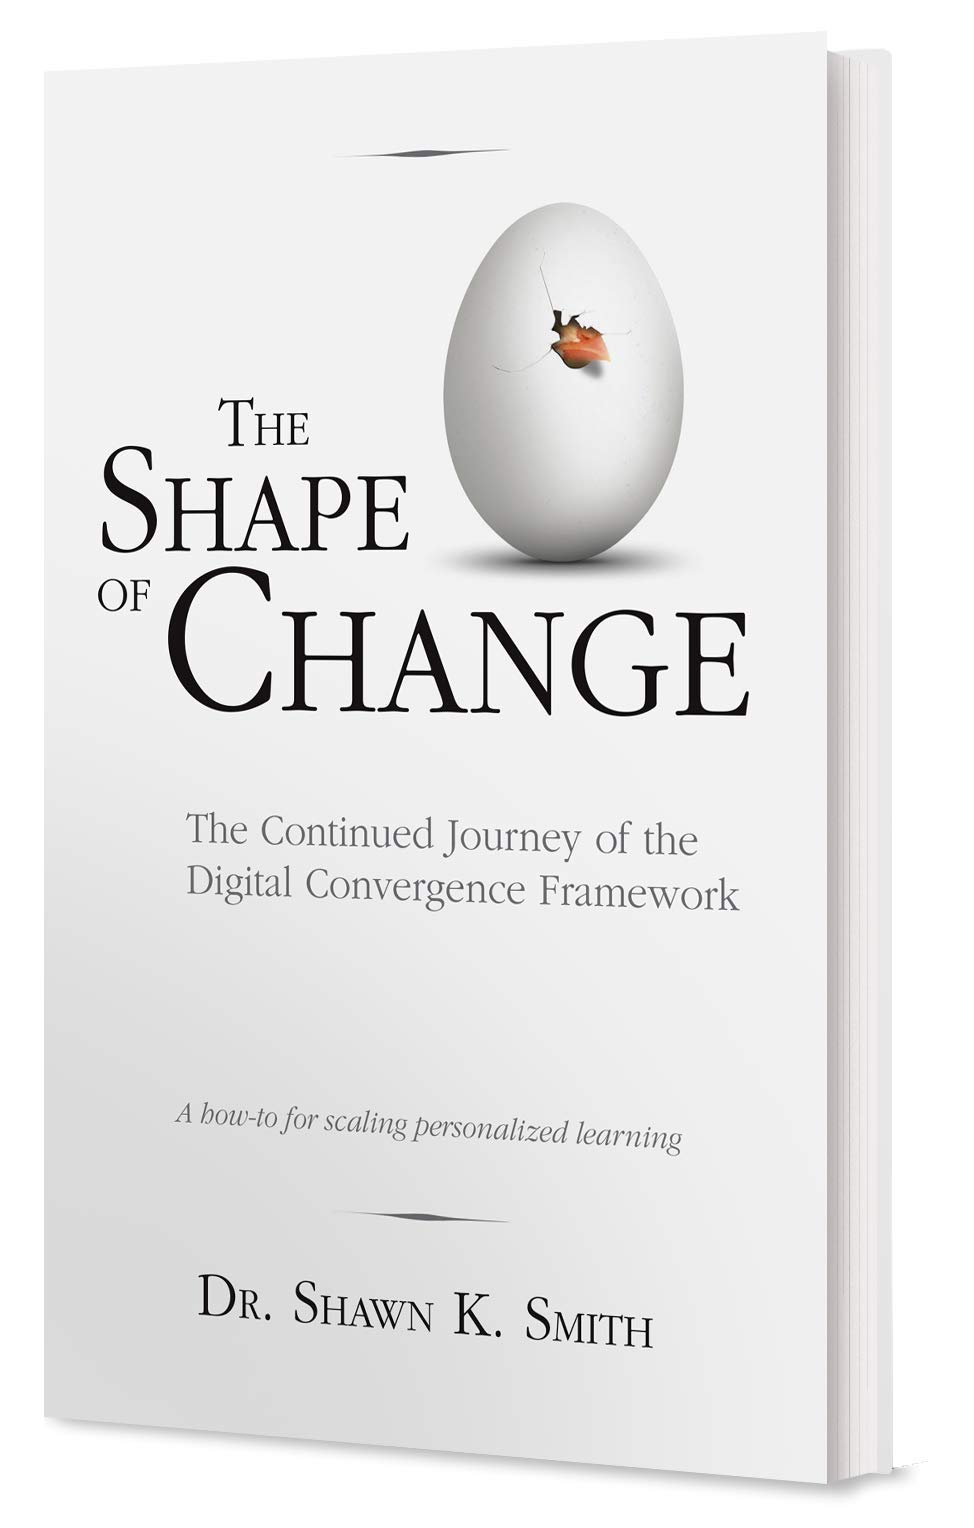 The Shape of Change: The Continued Journey of the Digital Convergence Framework pdf